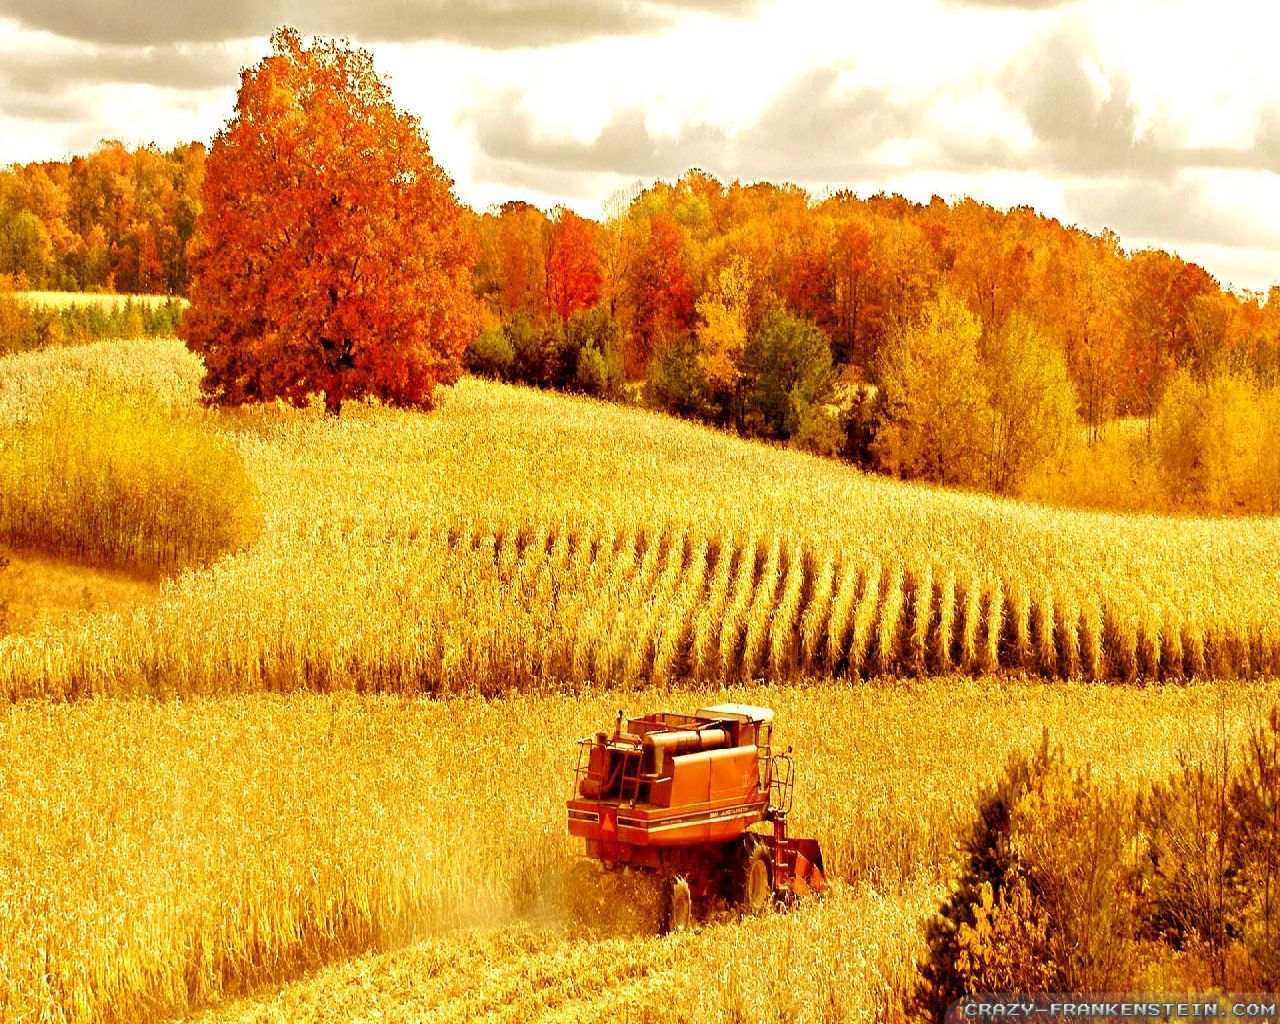 Wallpaper Scenes Of Fall Autumn Scenes Wallpapers Seasonal Crazy Frankenstein